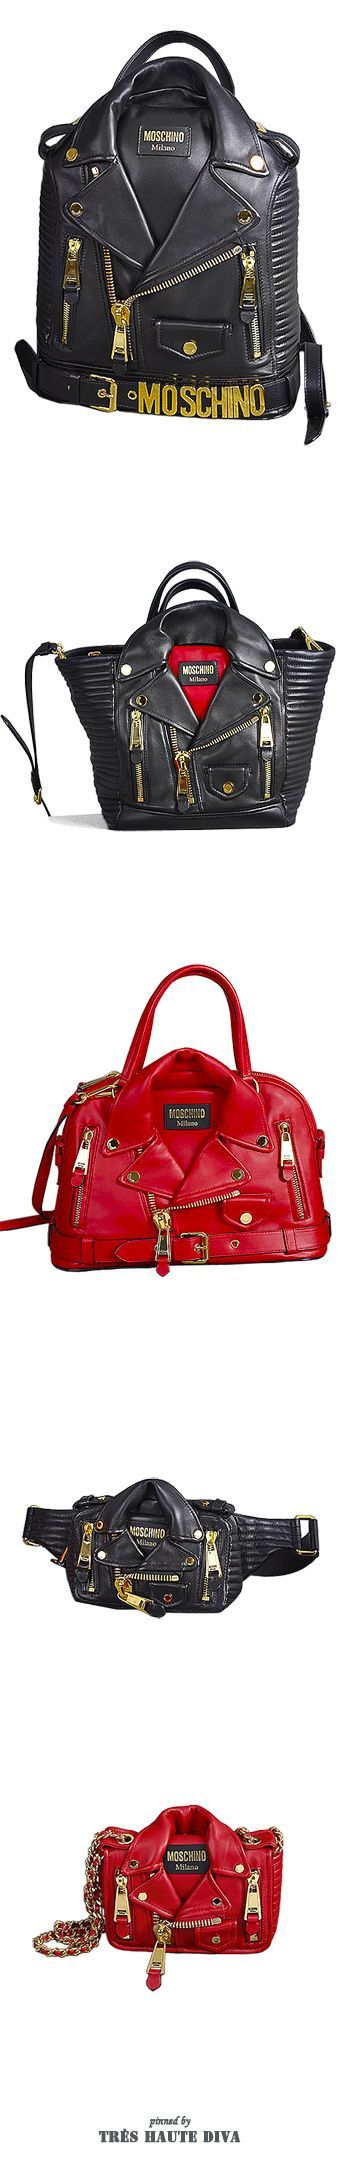 Love this Michael Kors Purse, Cheap Michael Kors Bags Outlet Online Clearance… - designers purses, branded purse sale, designer purses bags *sponsored https://www.pinterest.com/purses_handbags/ https://www.pinterest.com/explore/purse/ https://www.pinterest.com/purses_handbags/radley-handbags/ http://www.burlingtoncoatfactory.com/burlingtoncoatfactory/womens-handbags-60618.aspx